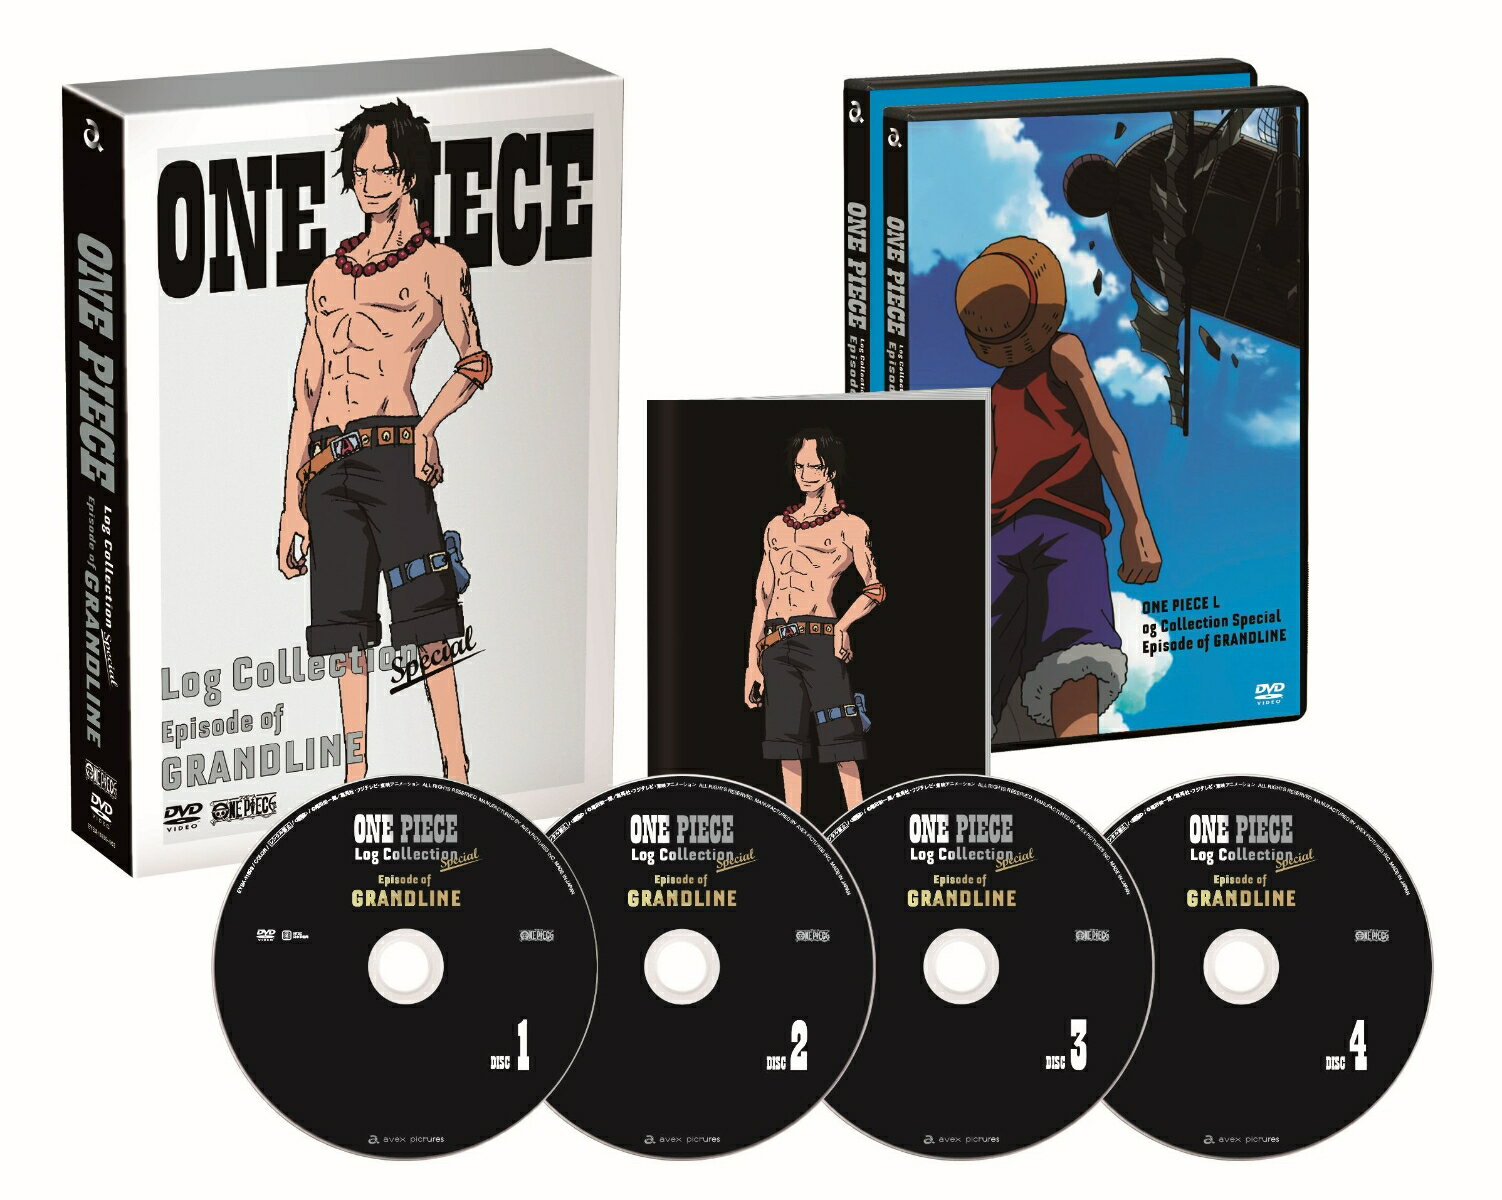 "ONE PIECE Log Collection Special""Episode of GRANDLINE"" [ 尾田栄一郎 ]"